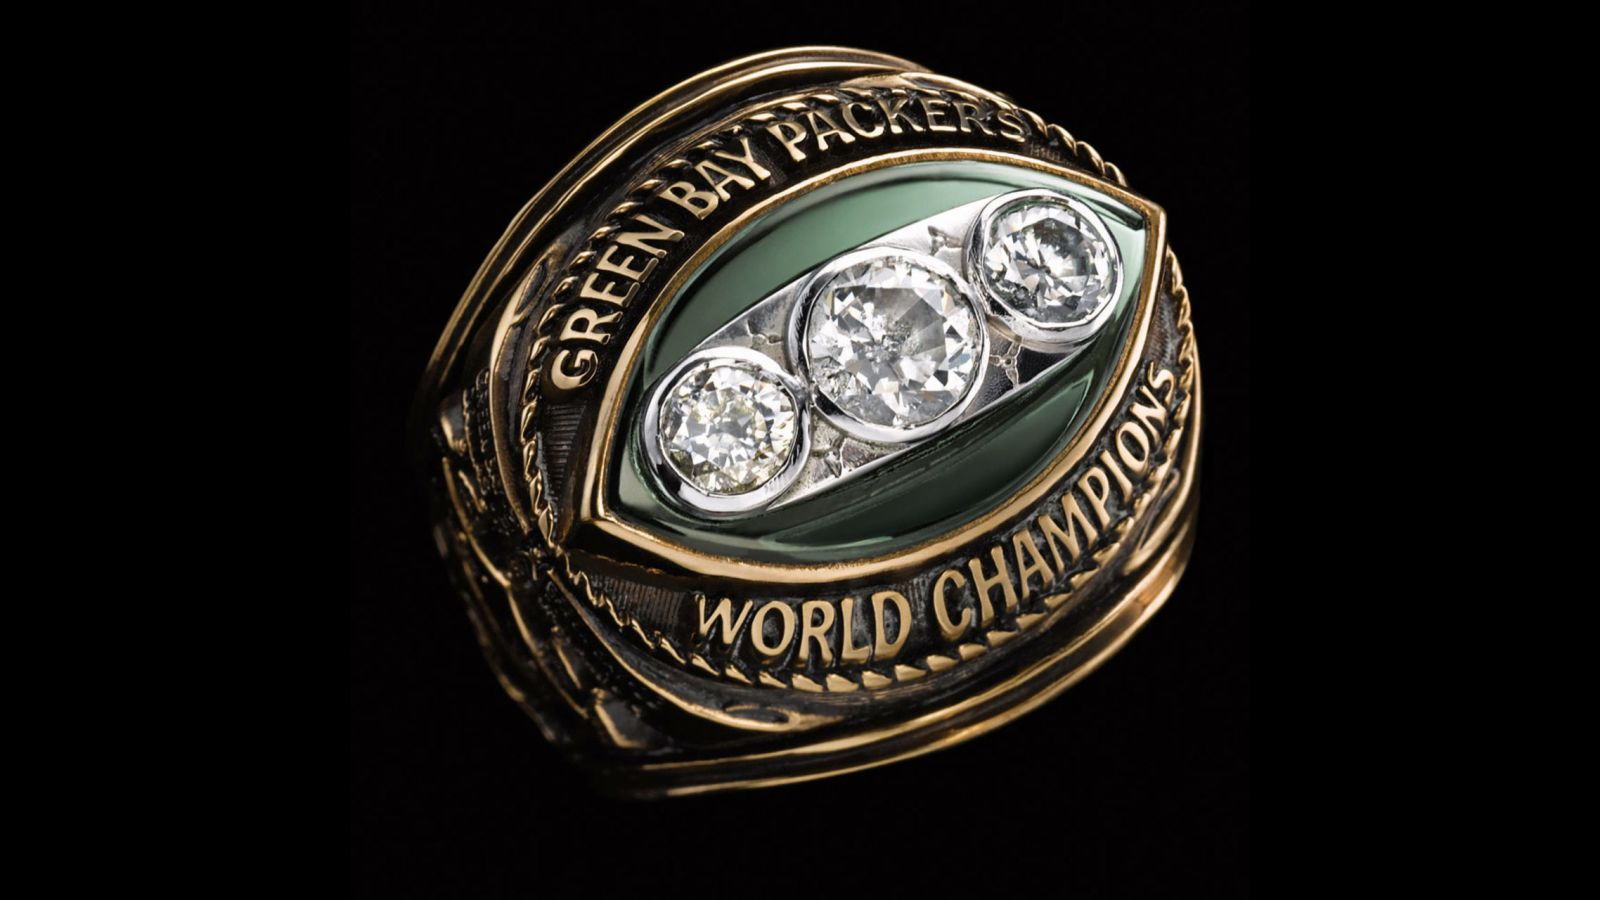 1967 Green Bay Packers Super Bowl Championship Ring